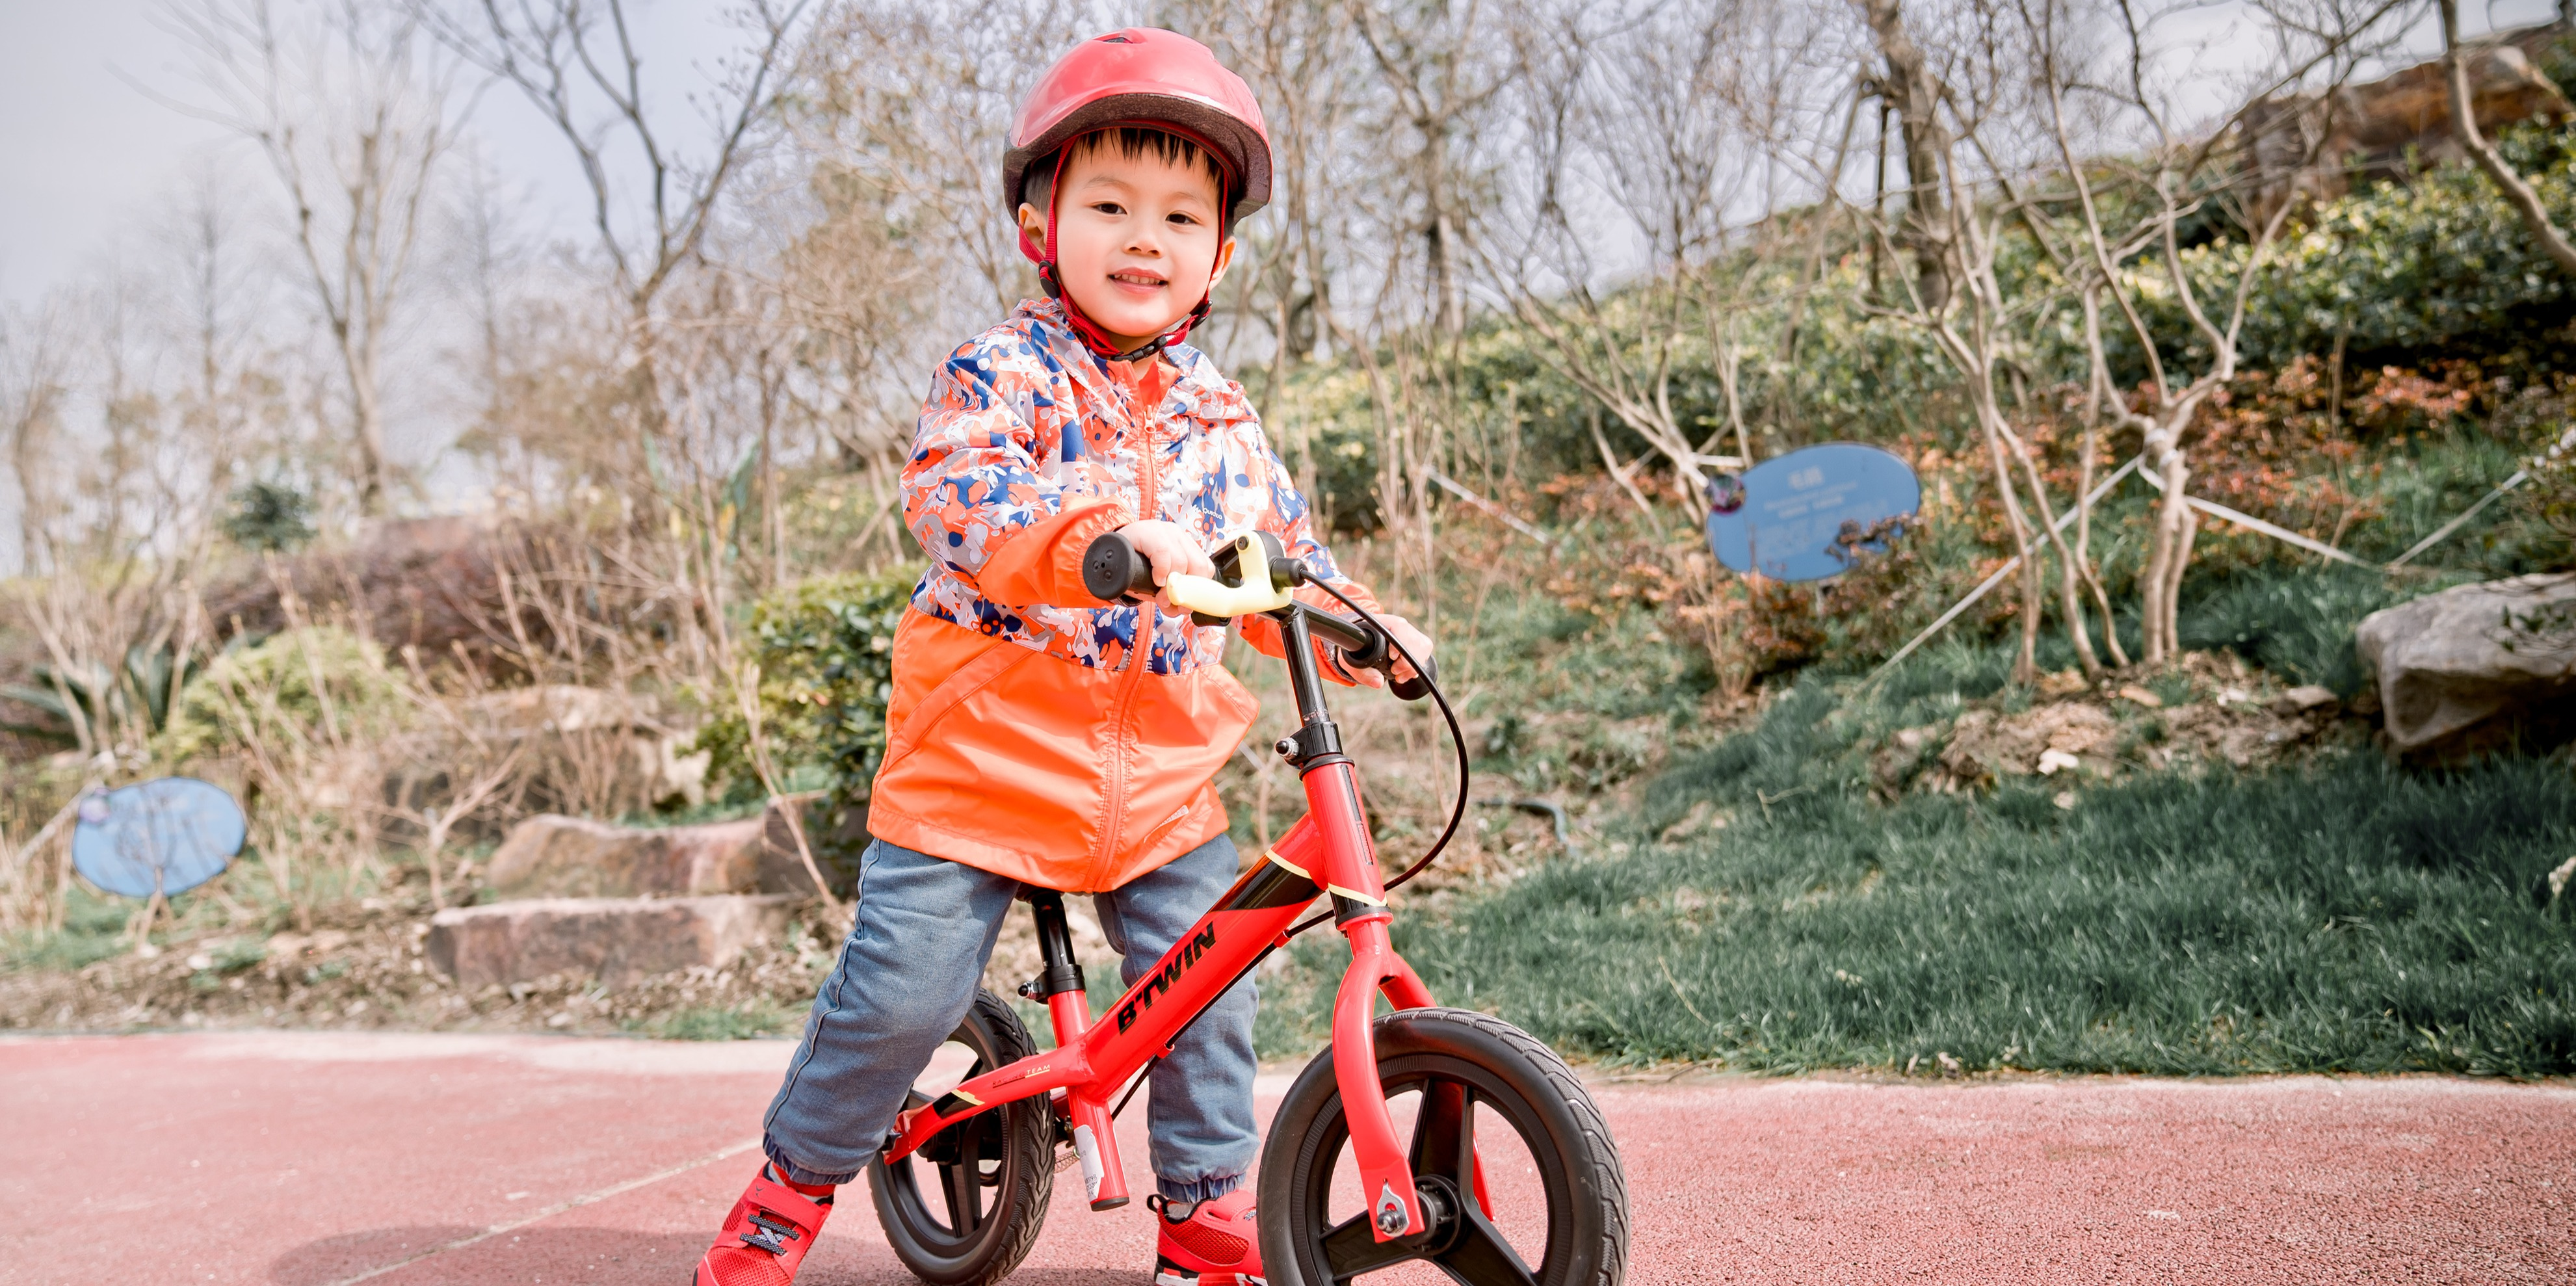 Where Are The Best Places For Kids To Ride A Bike?